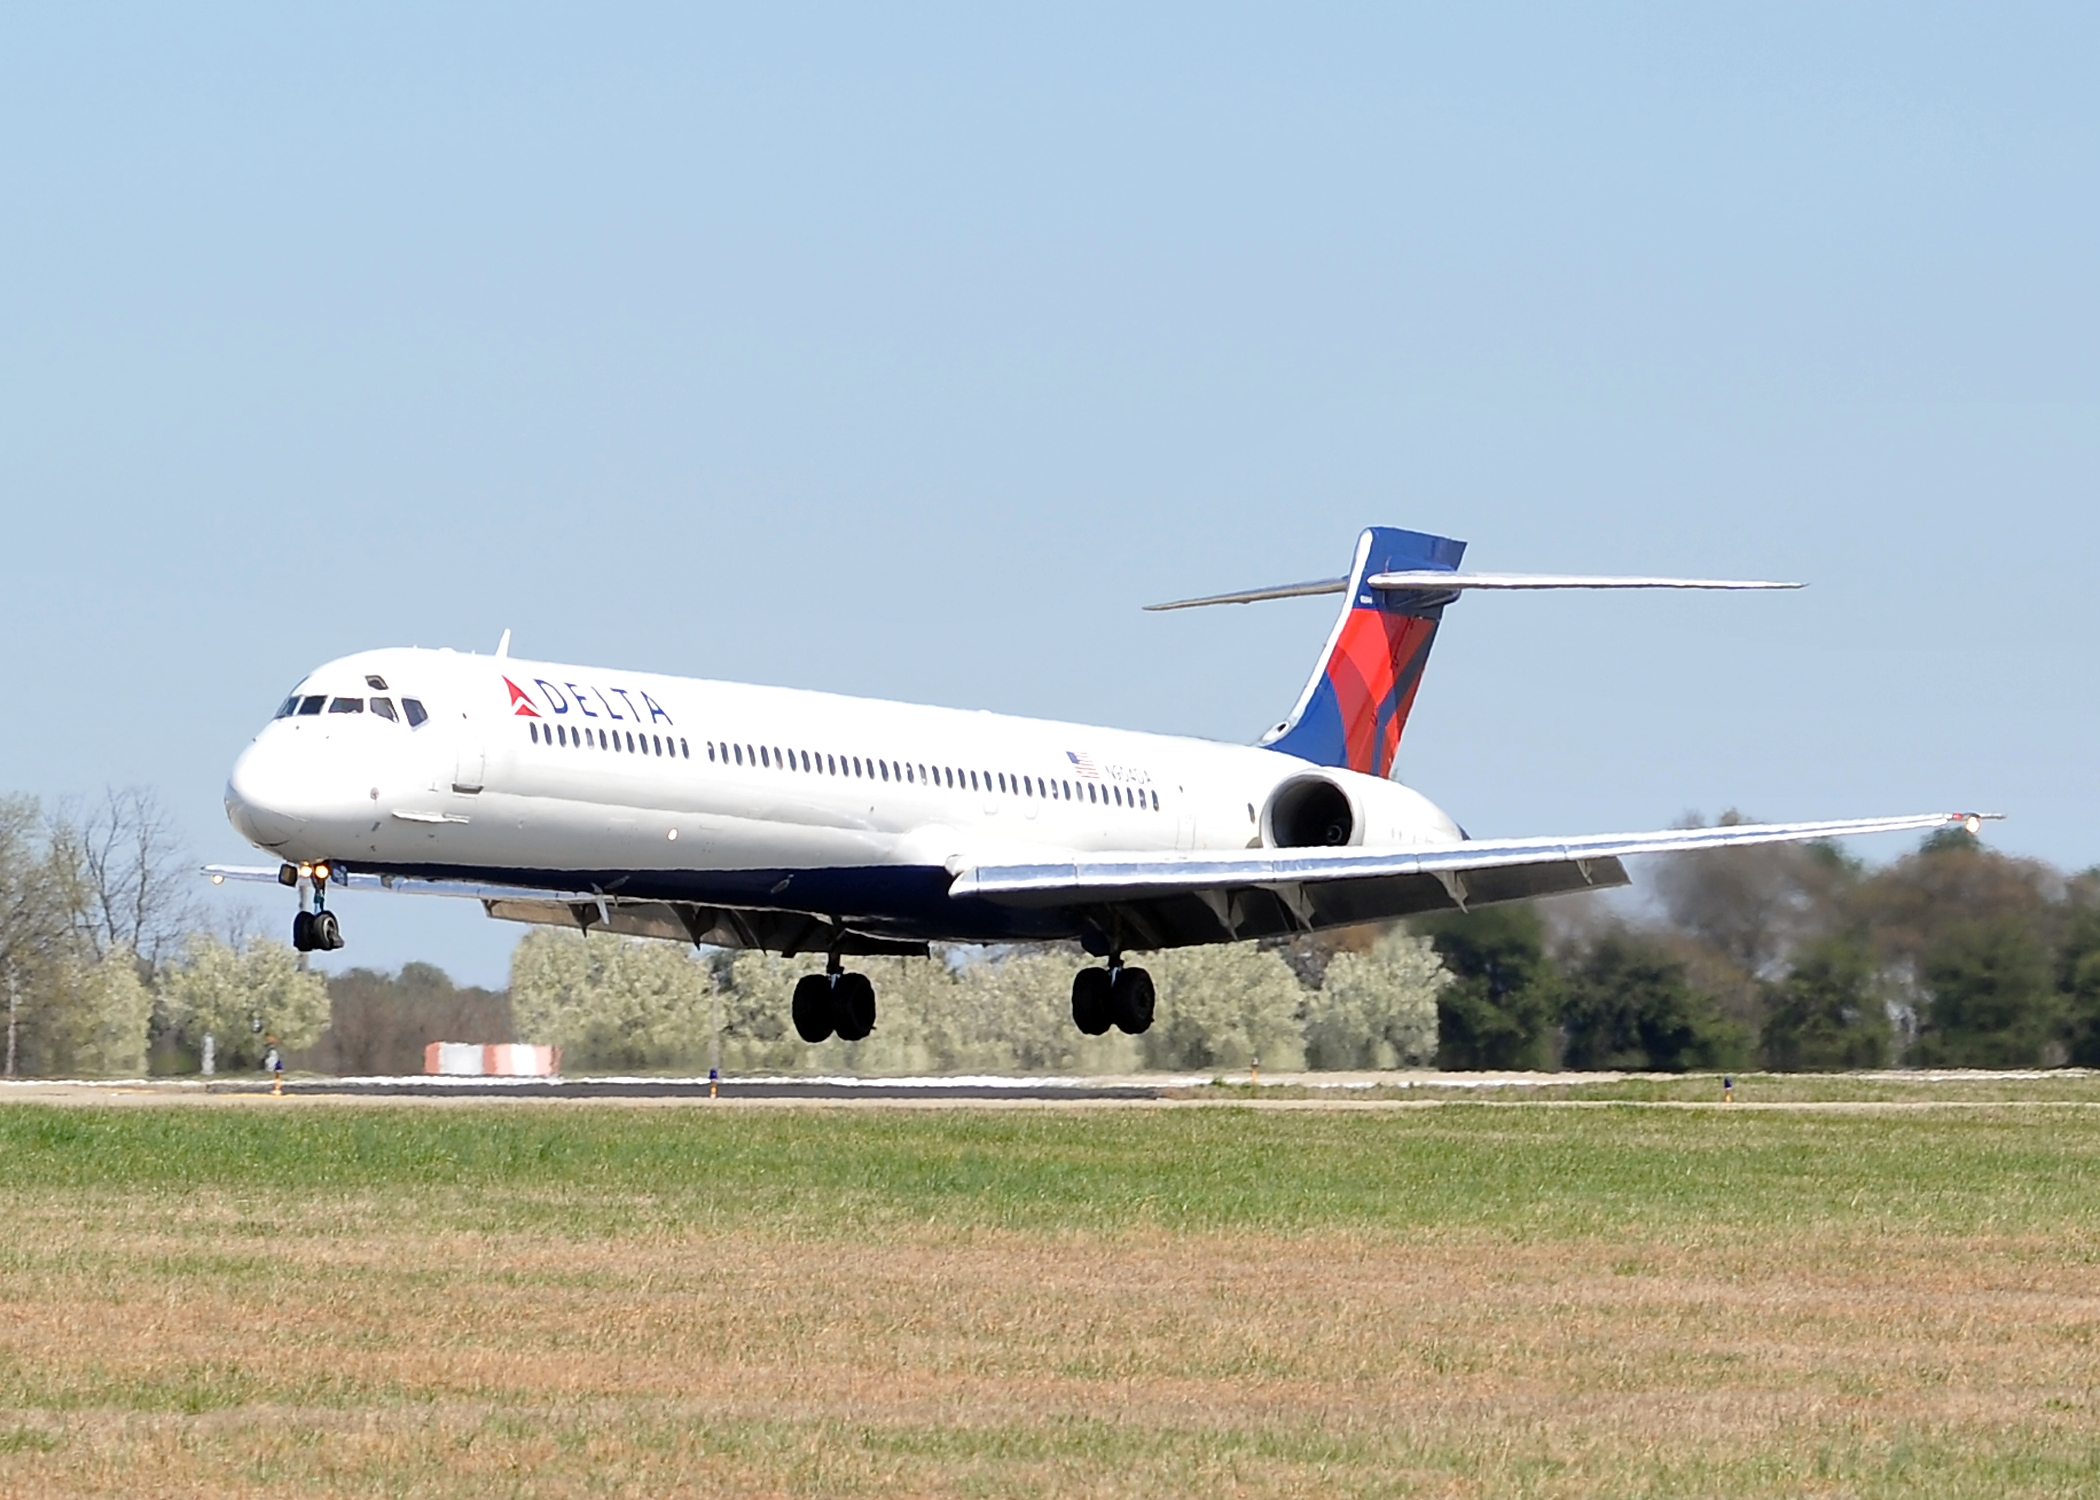 Delta to Provide Complimentary Main Cabin Meals on Transcontinental Flights